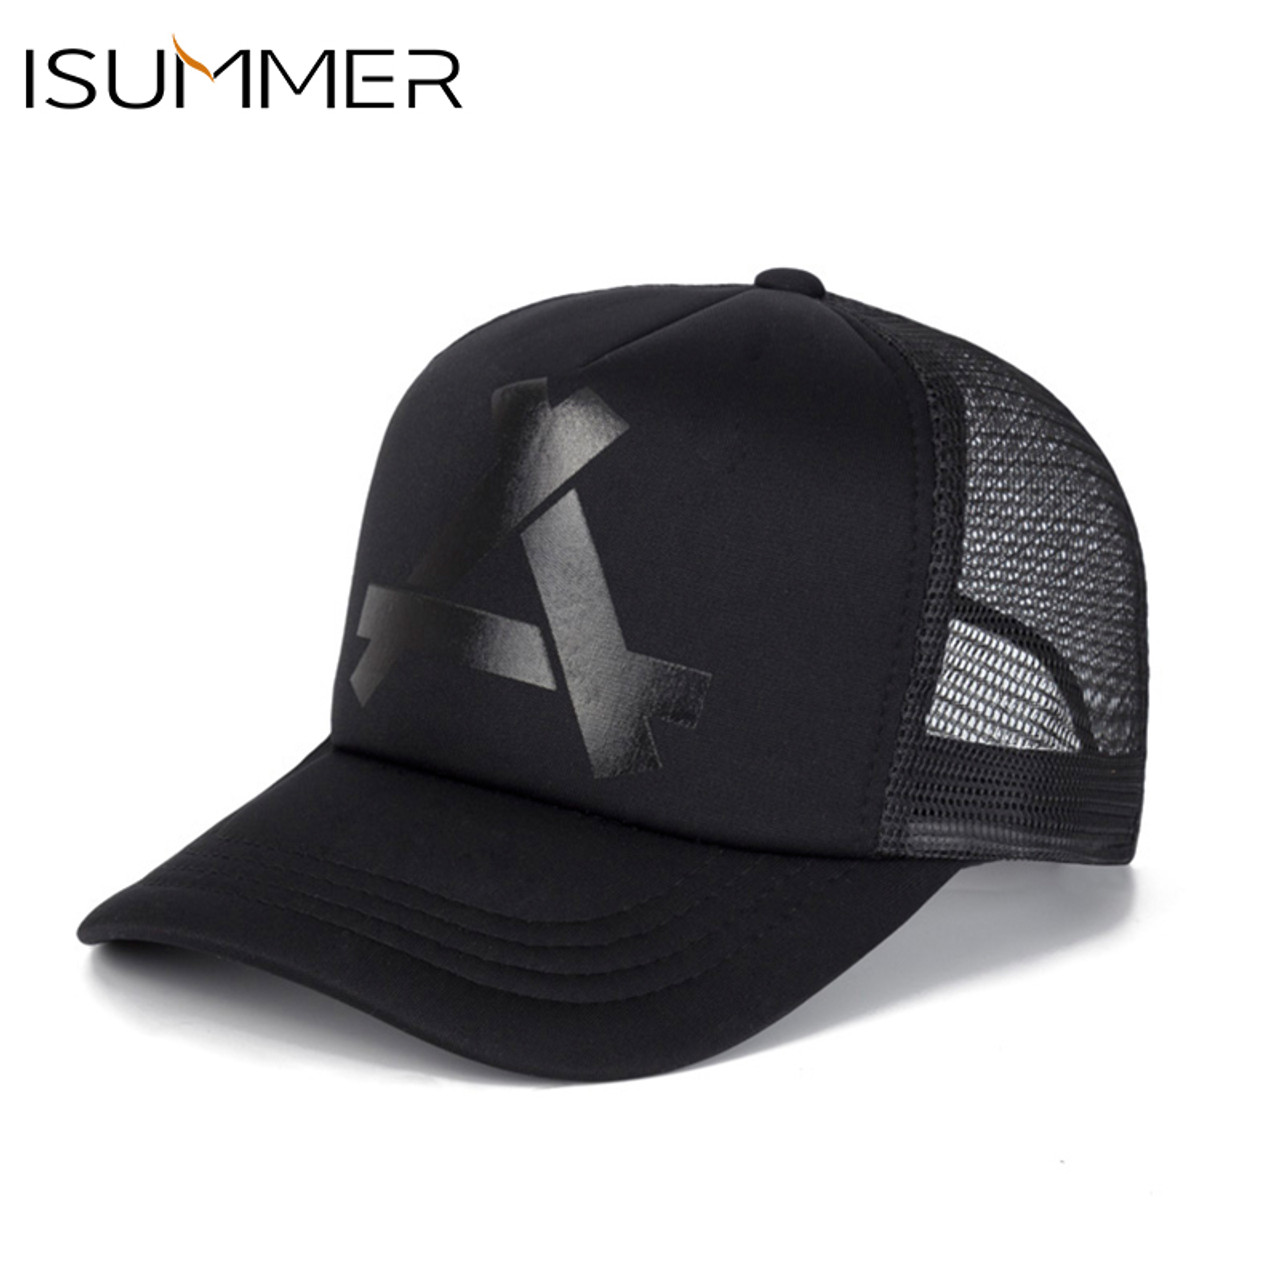 57447504f90 ... ISUMMER 2018 Summer Baseball Mesh Cap Men Hat Hip Hop Snapback Hat Dad  Hat Adjustable Leisure ...